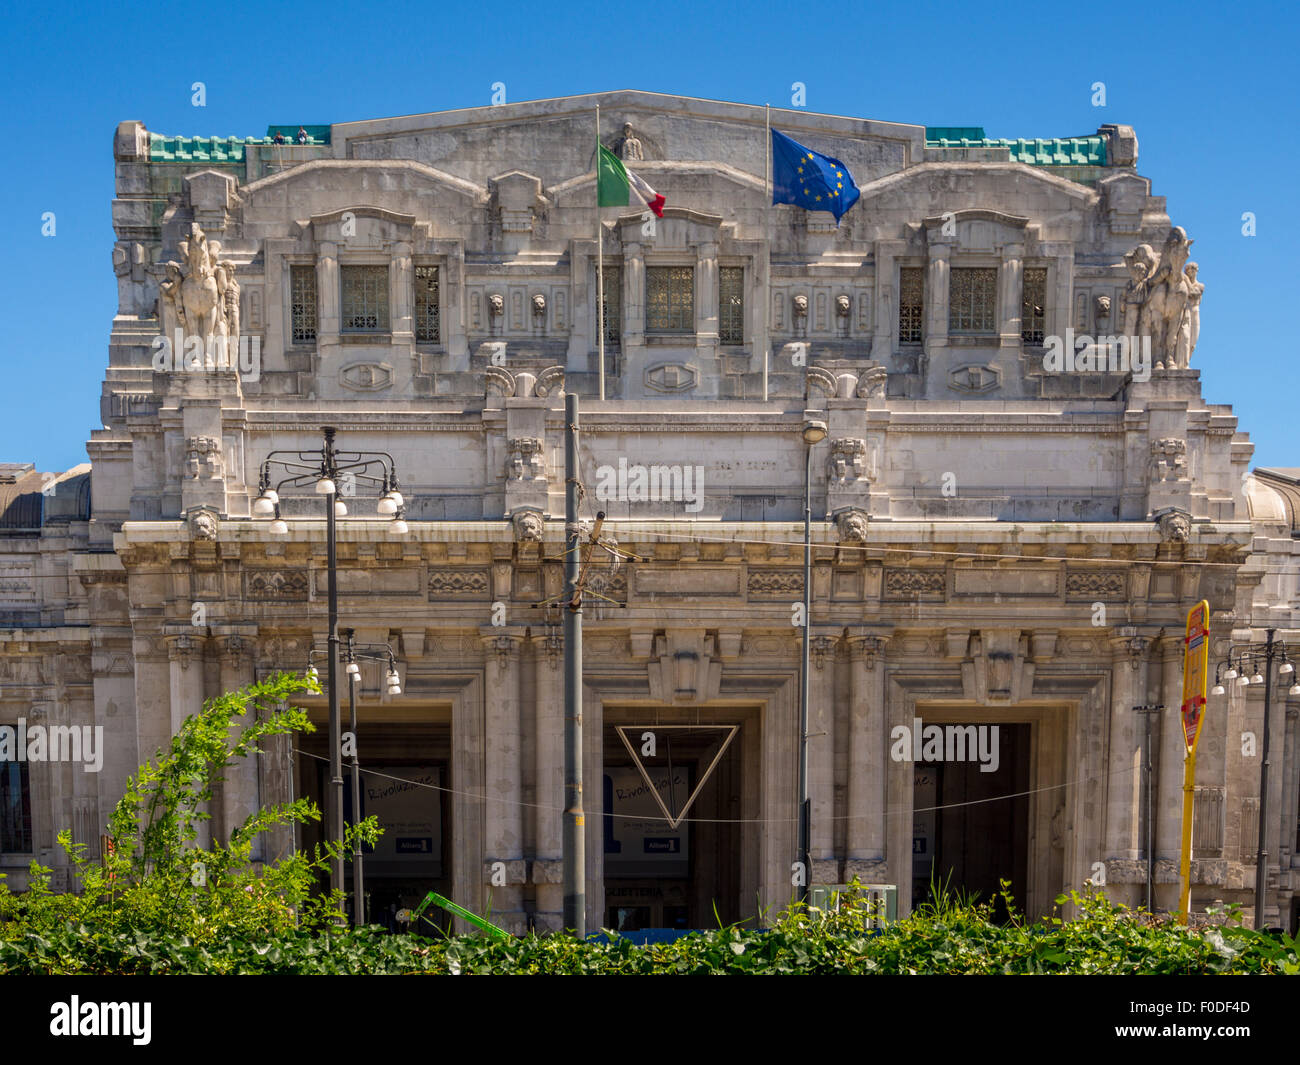 Exterior of Milano Centrale, Piazza Duca d'Aosta - Stock Image